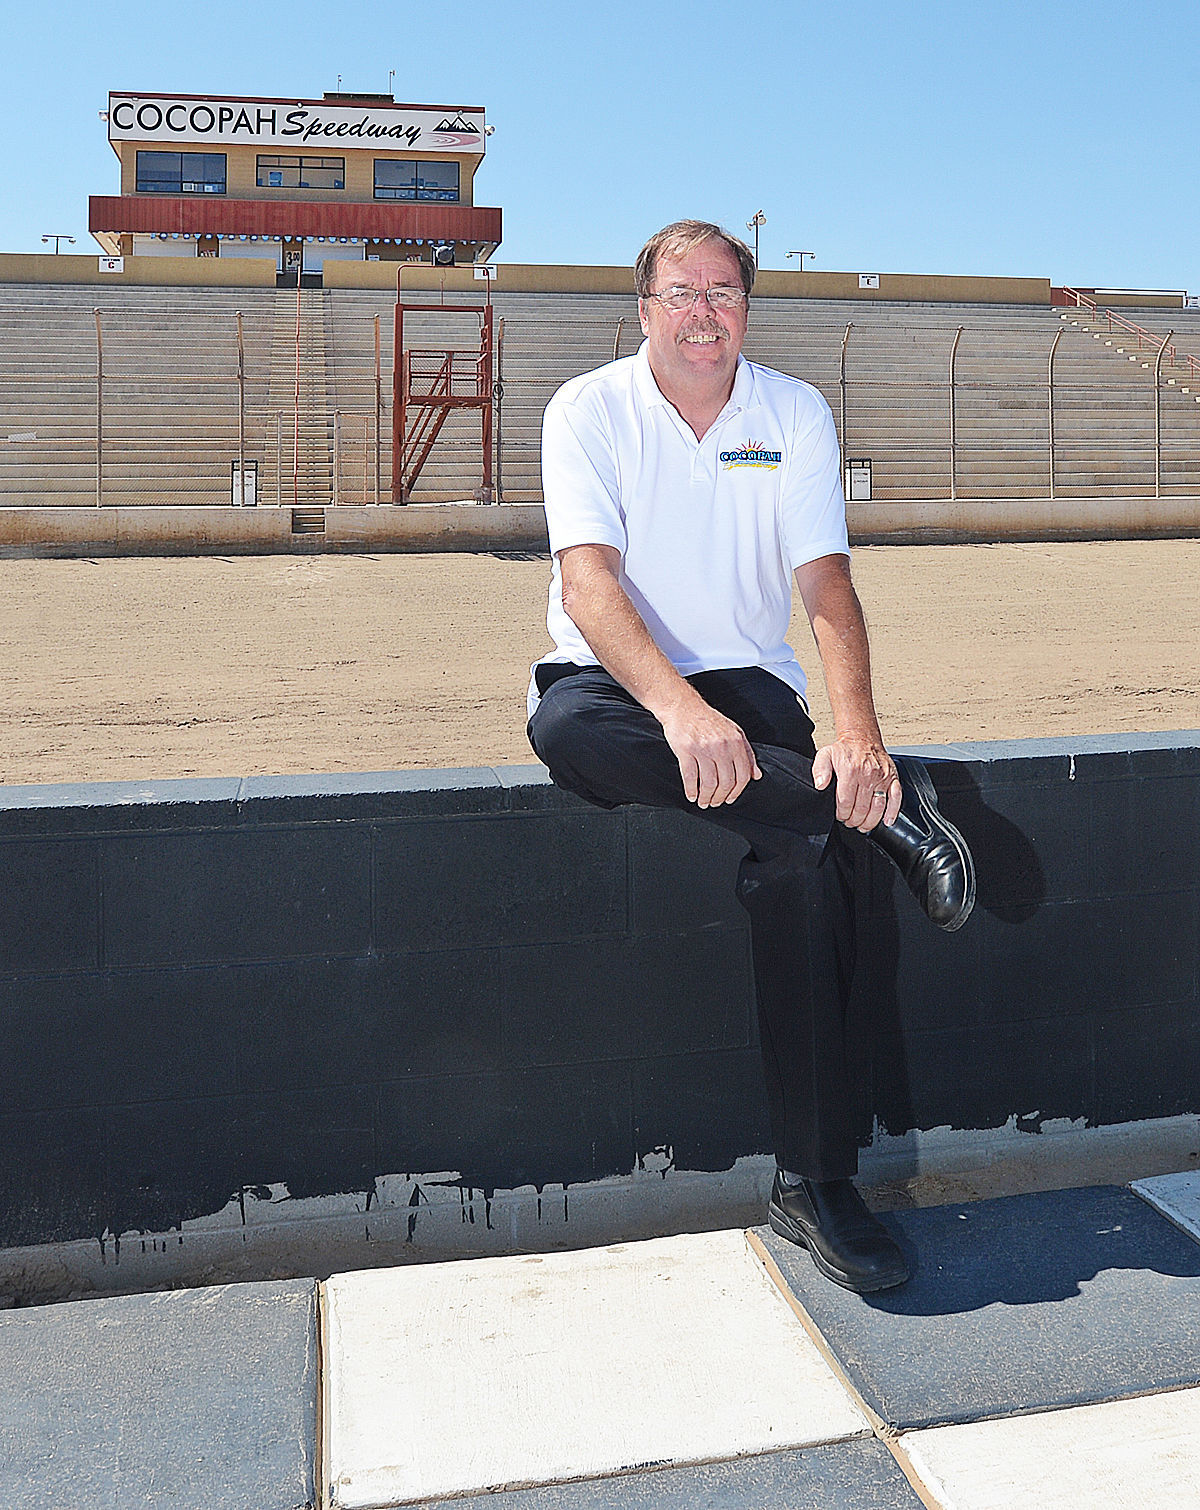 'Dream job' for Dalen, who was named Cocopah Speedway director of ops